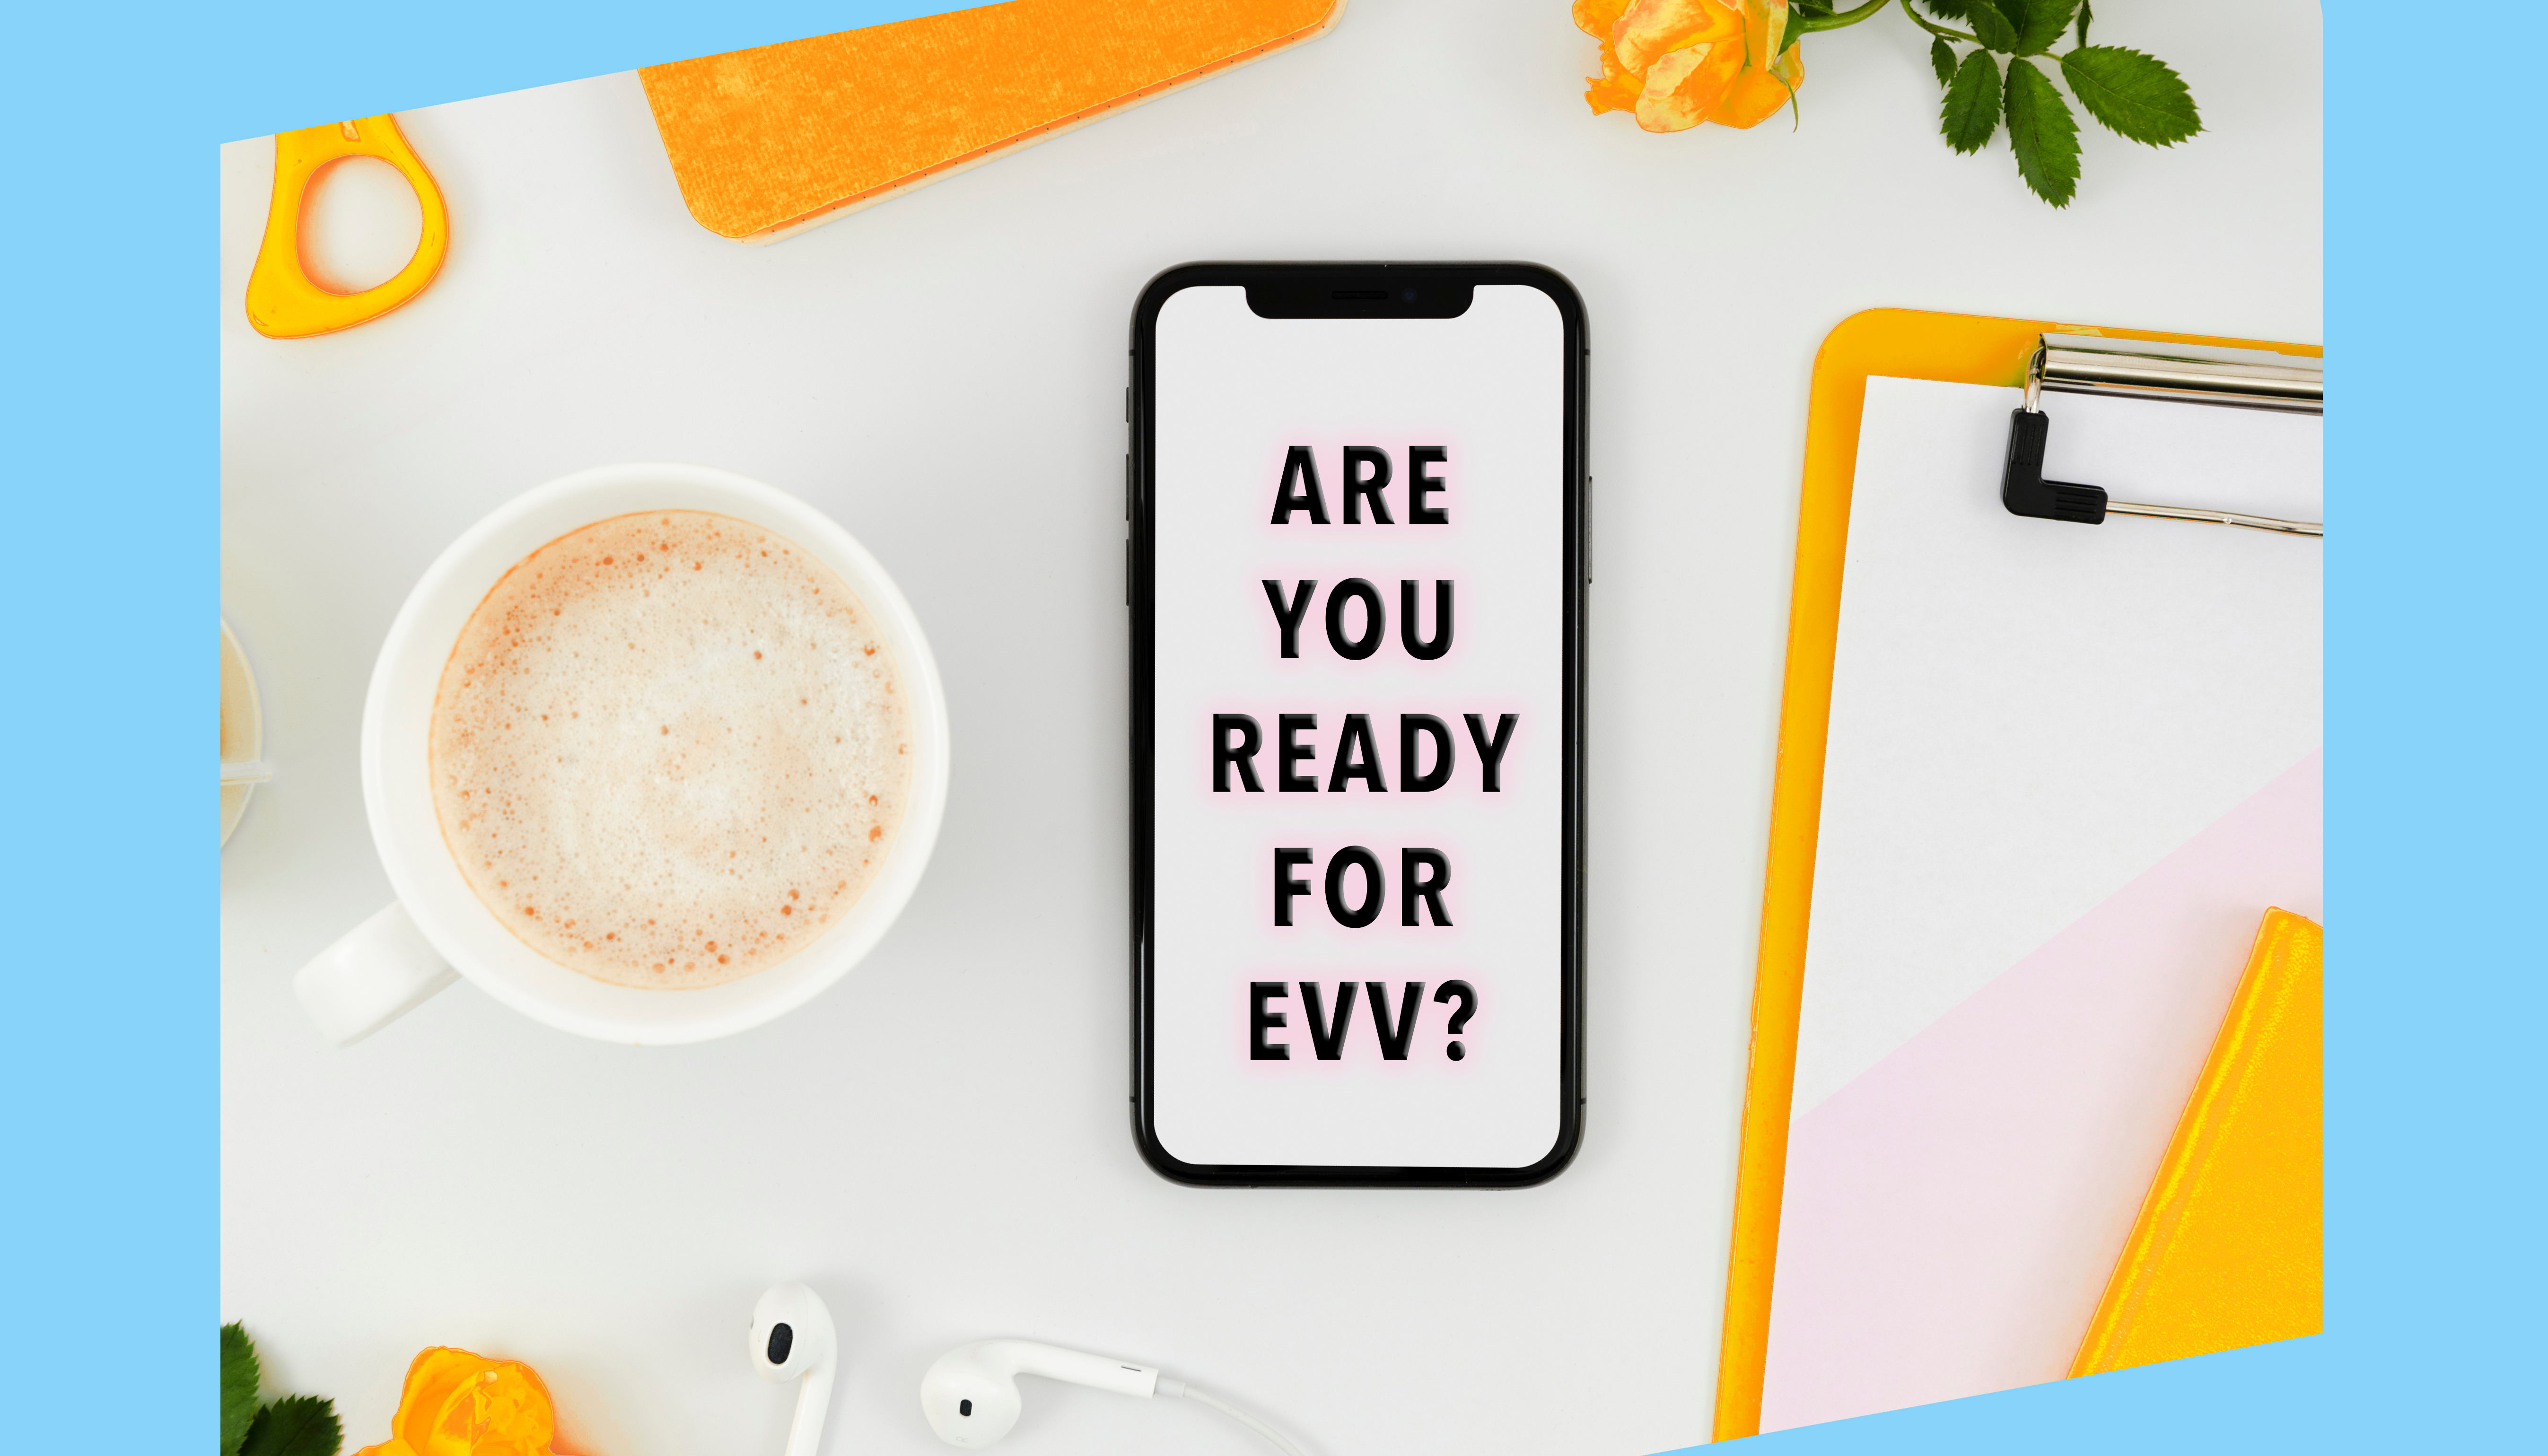 Are you prepared for Electronic Visit Verification?